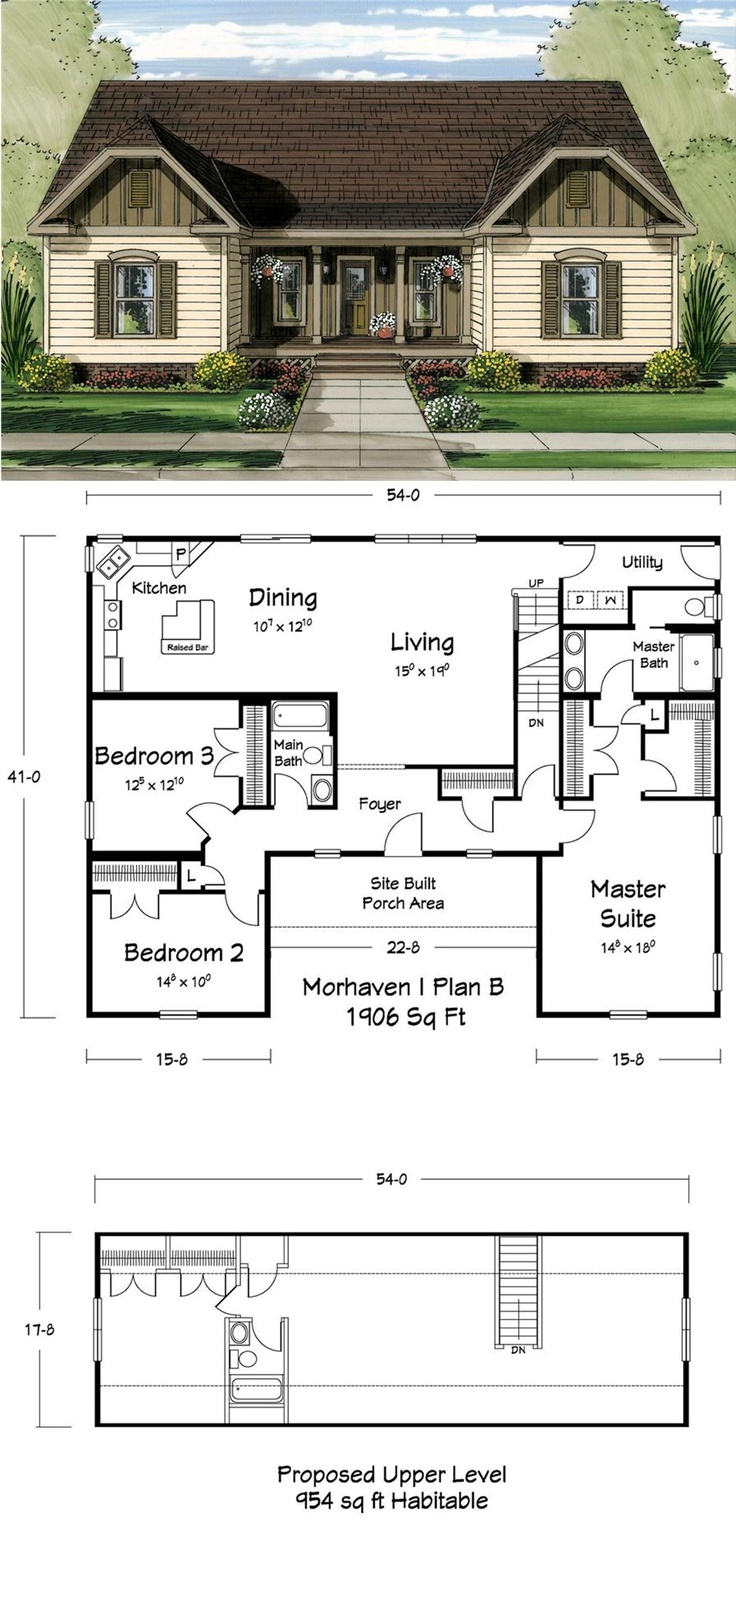 Sample templates home blueprint apps copy bedroom blueprint maker sample templates home blueprint apps copy bedroom blueprint maker save blueprint making app copy best room design app for ipad floor plan malvernweather Image collections